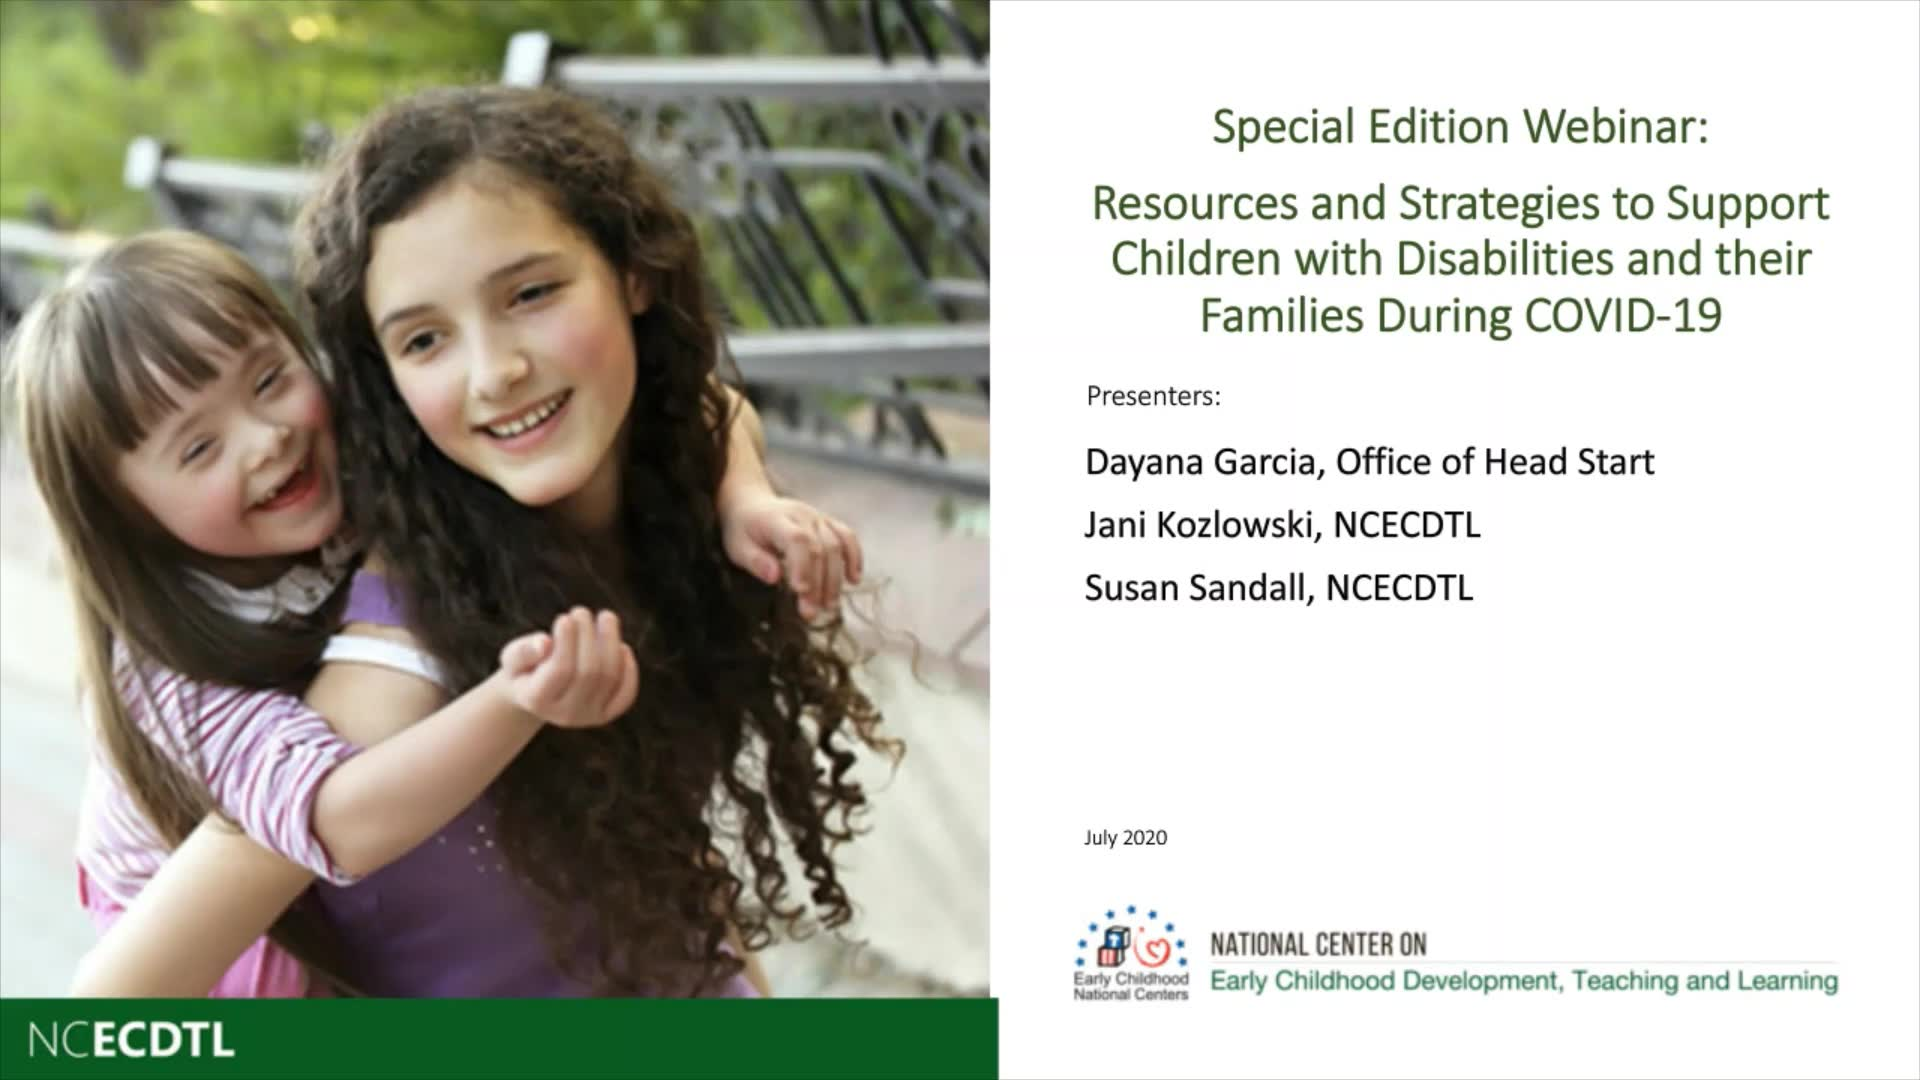 Resources and Strategies to Support Children with Disabilities and Their Families During COVID-19